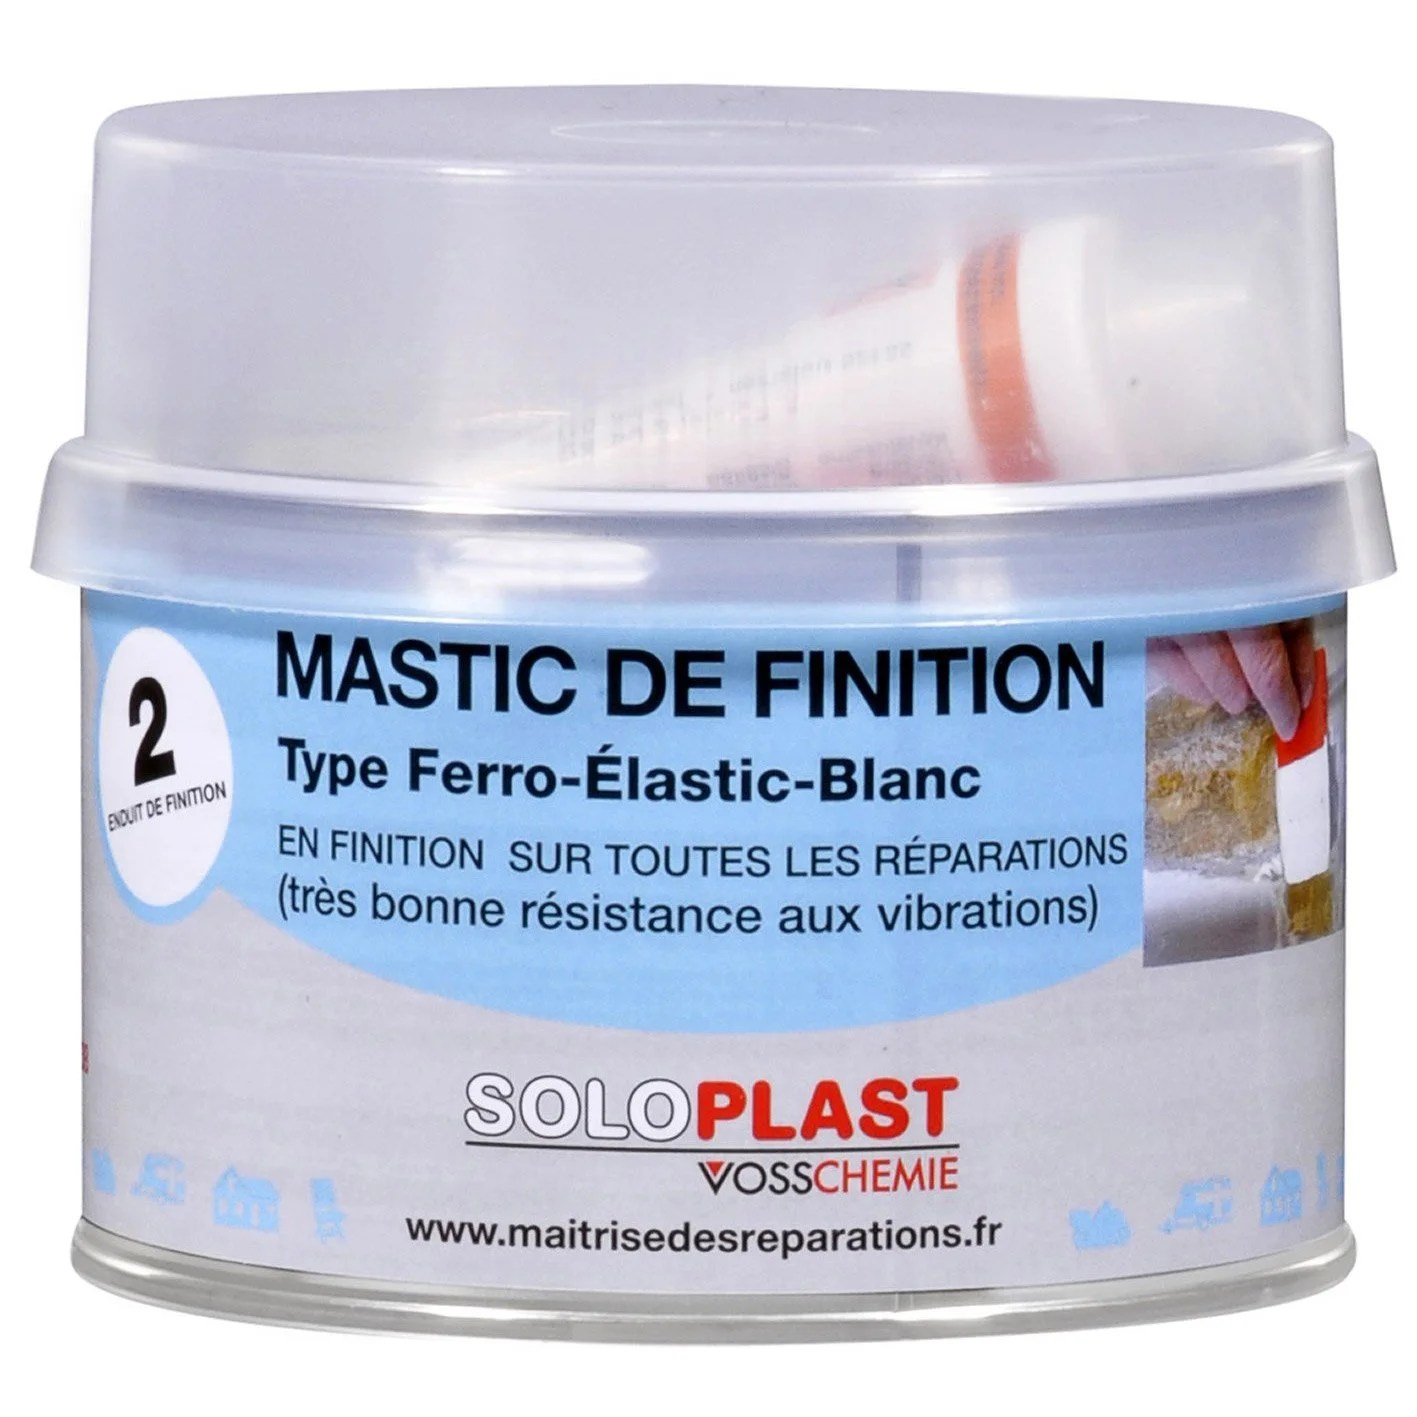 Gelcoat De Finition Leroy Merlin Mastic Et Durcisseur Finition Few Soloplast 435 G